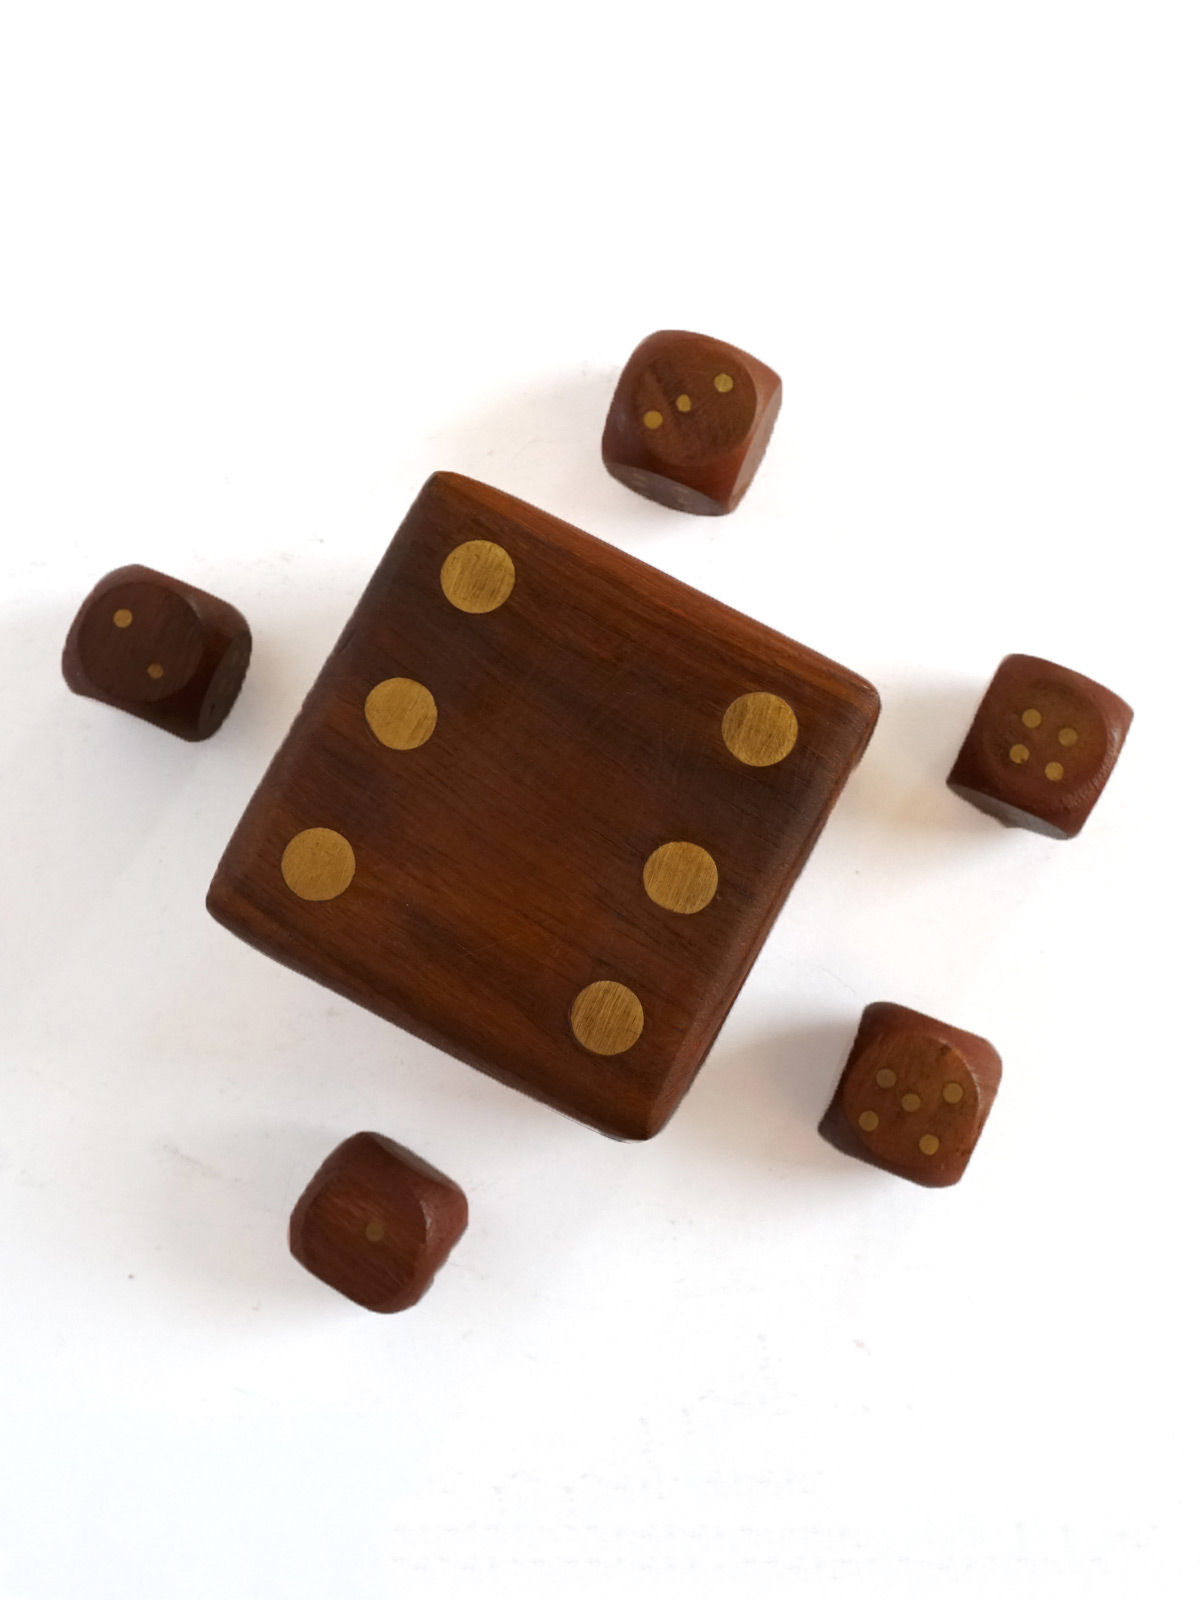 INTHING Dice Squre